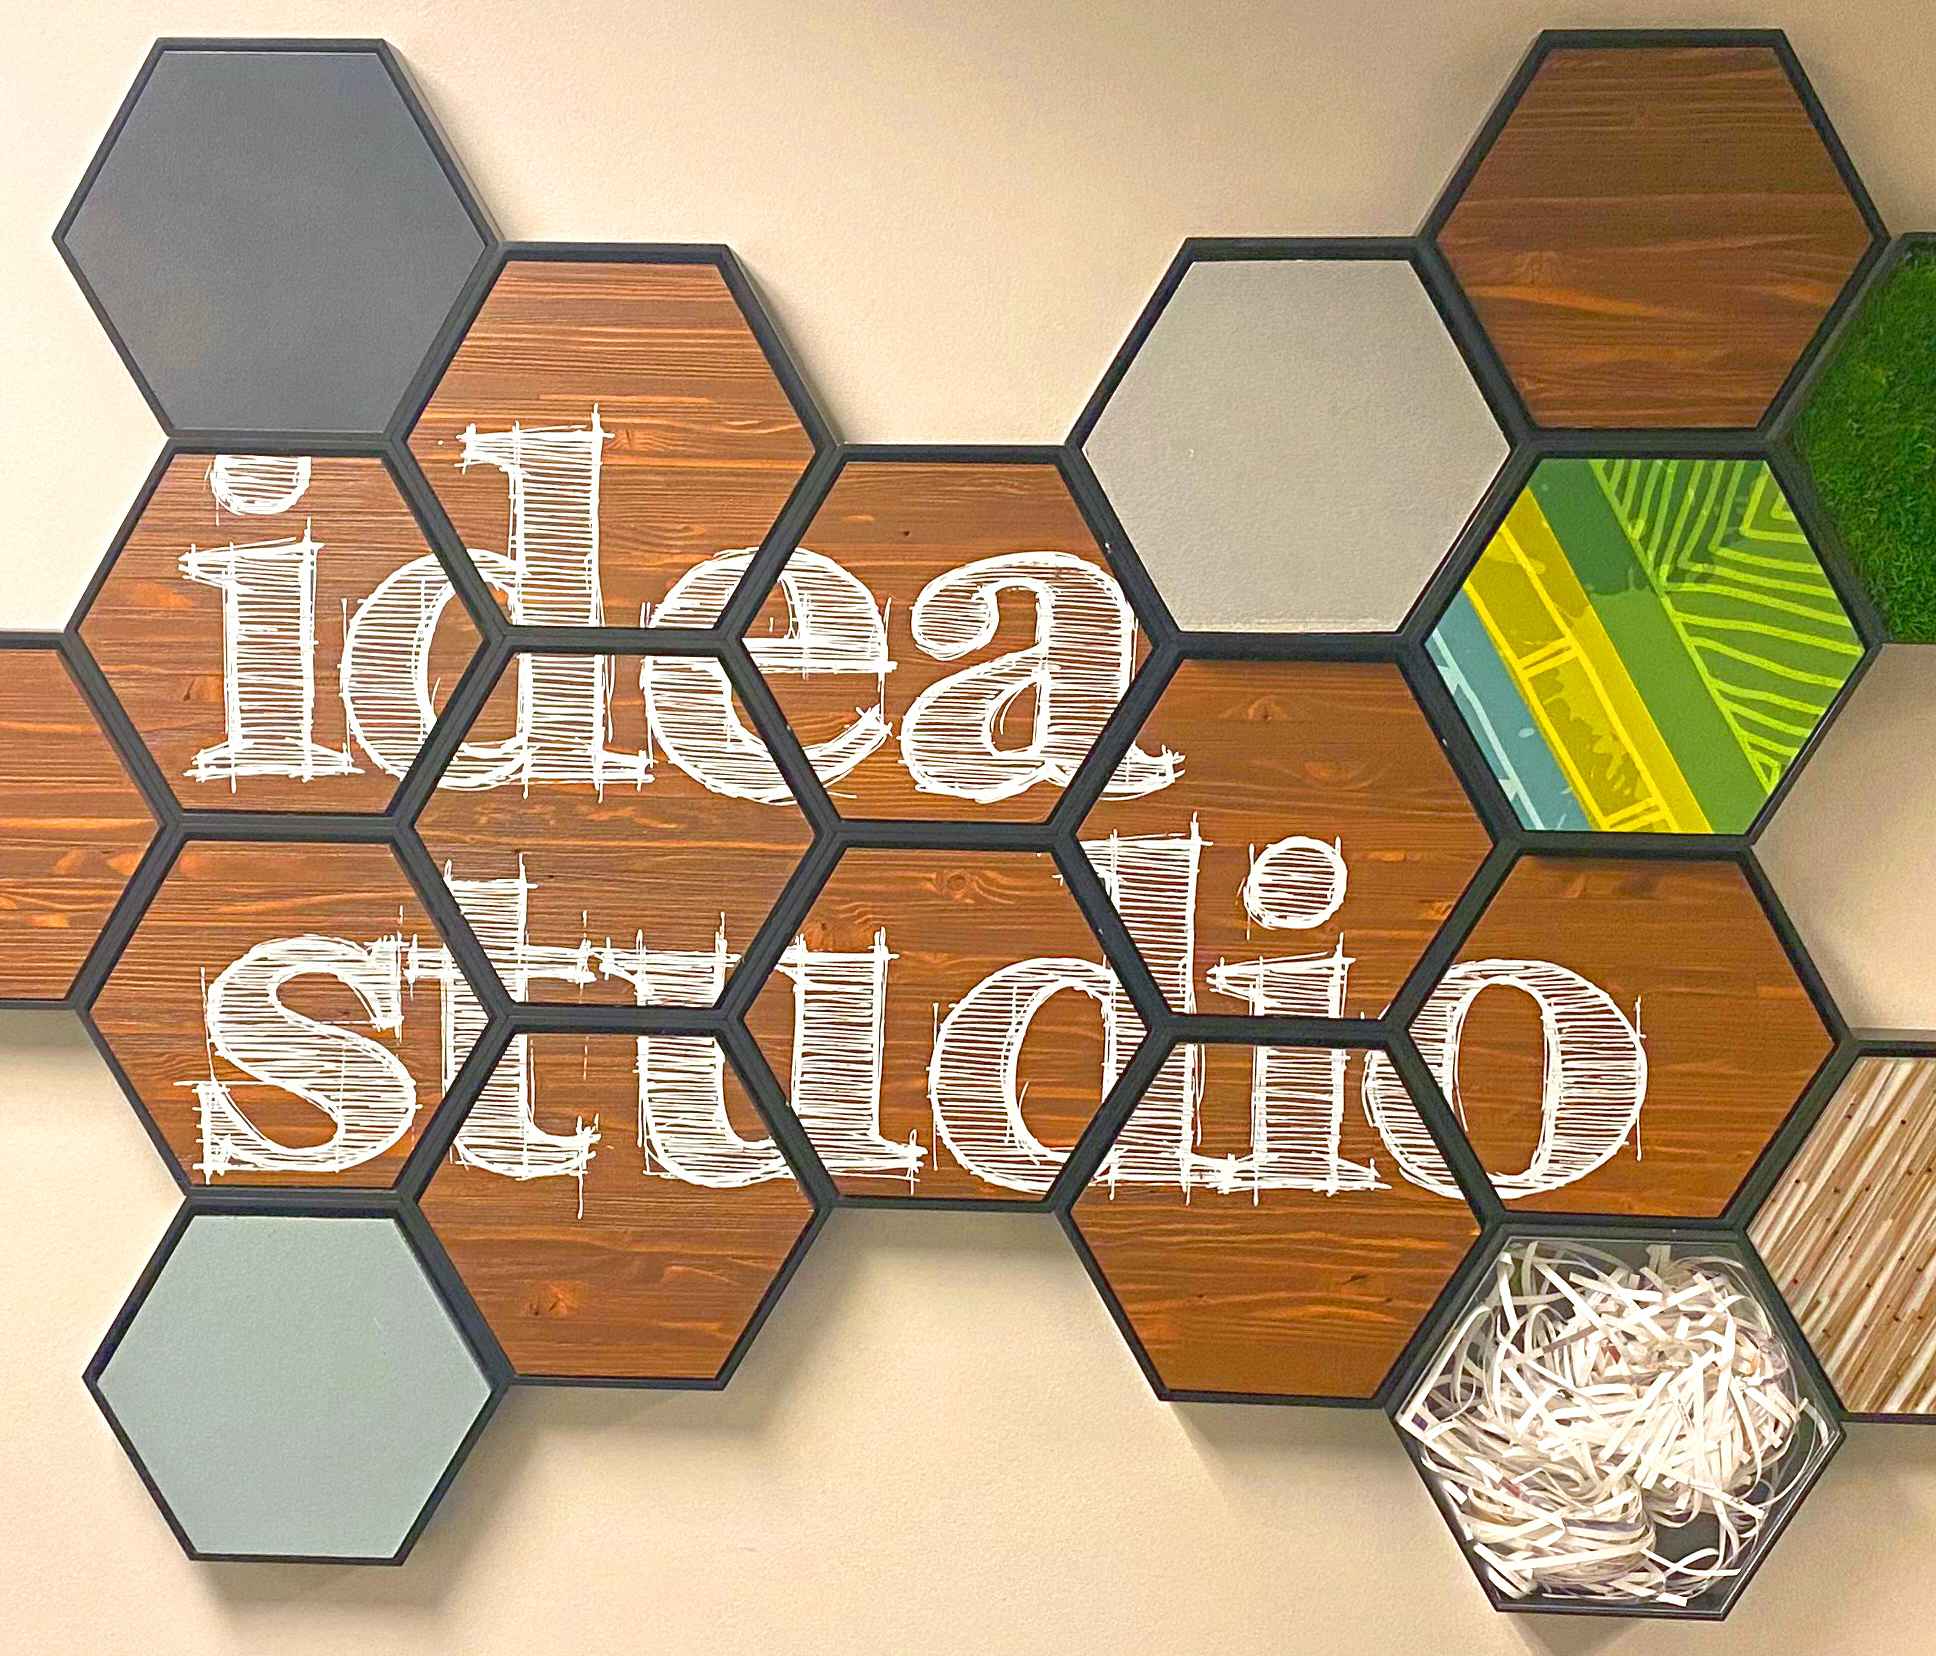 Idea Studio plans for events, limited reopening in September